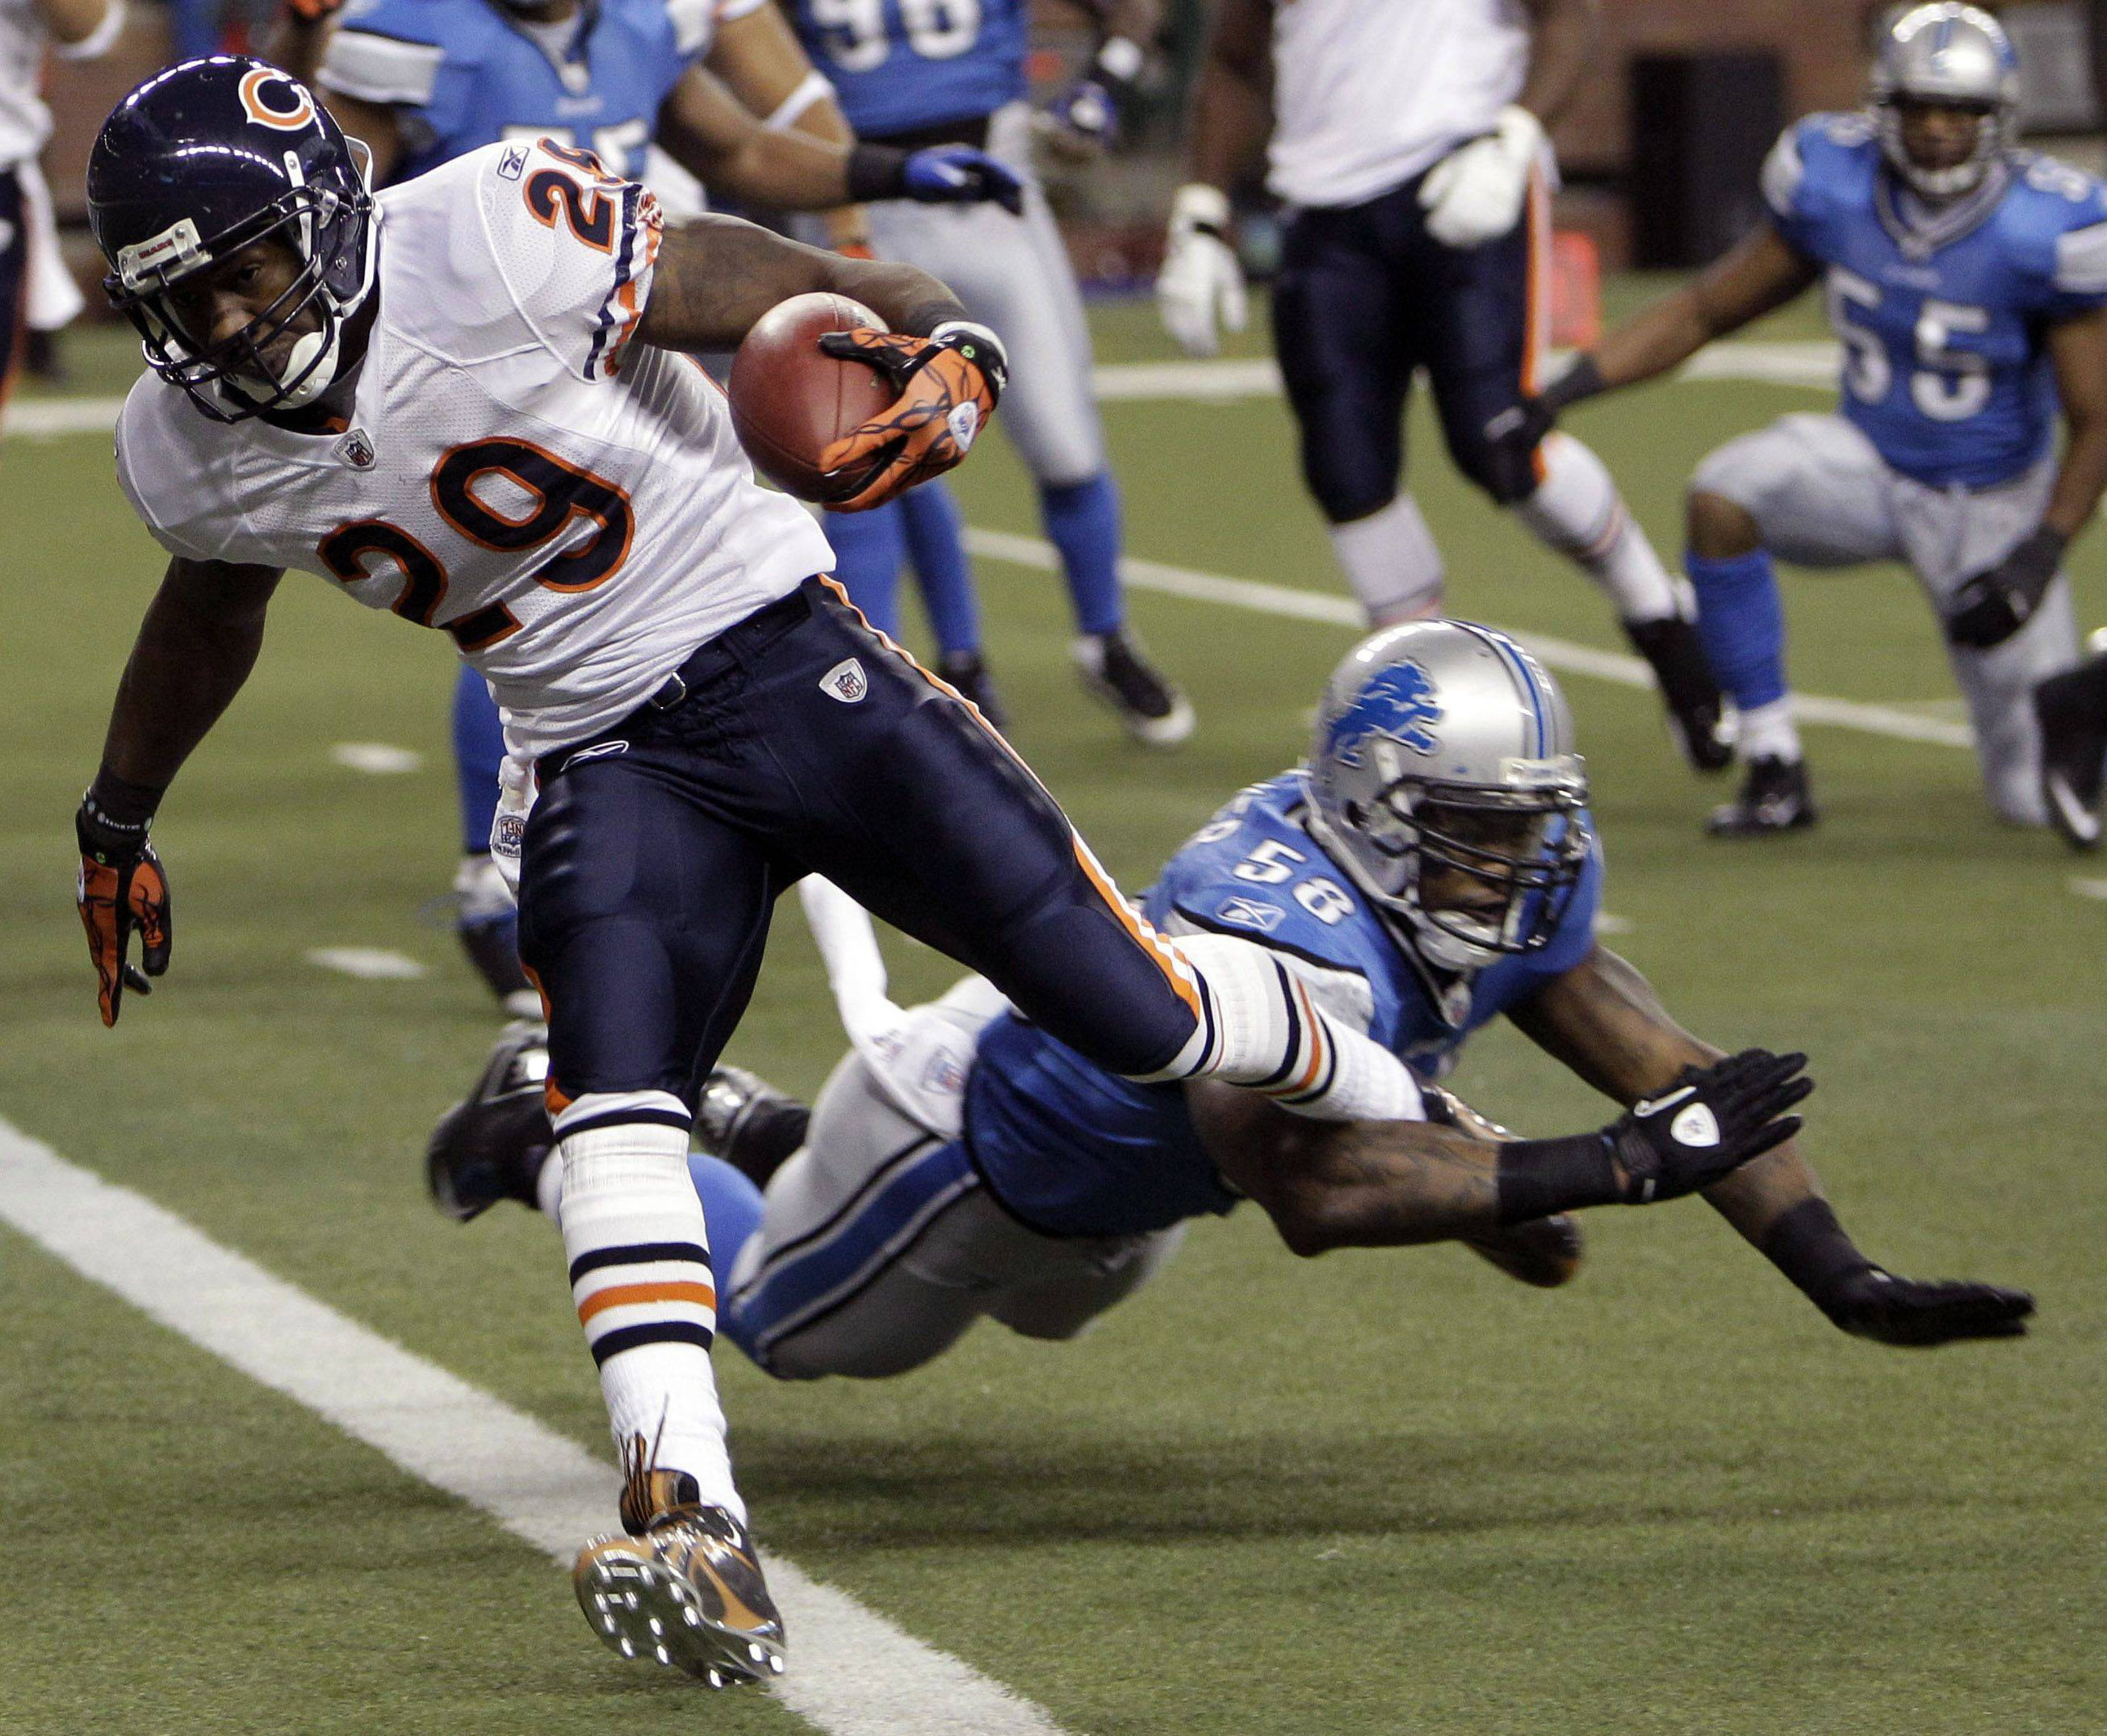 Chicago Bears running back Chester Taylor avoids a tackle by Detroit Lions linebacker Ashlee Palmer to score during the first quarter of an NFL football game at Ford Field in Detroit, Sunday.